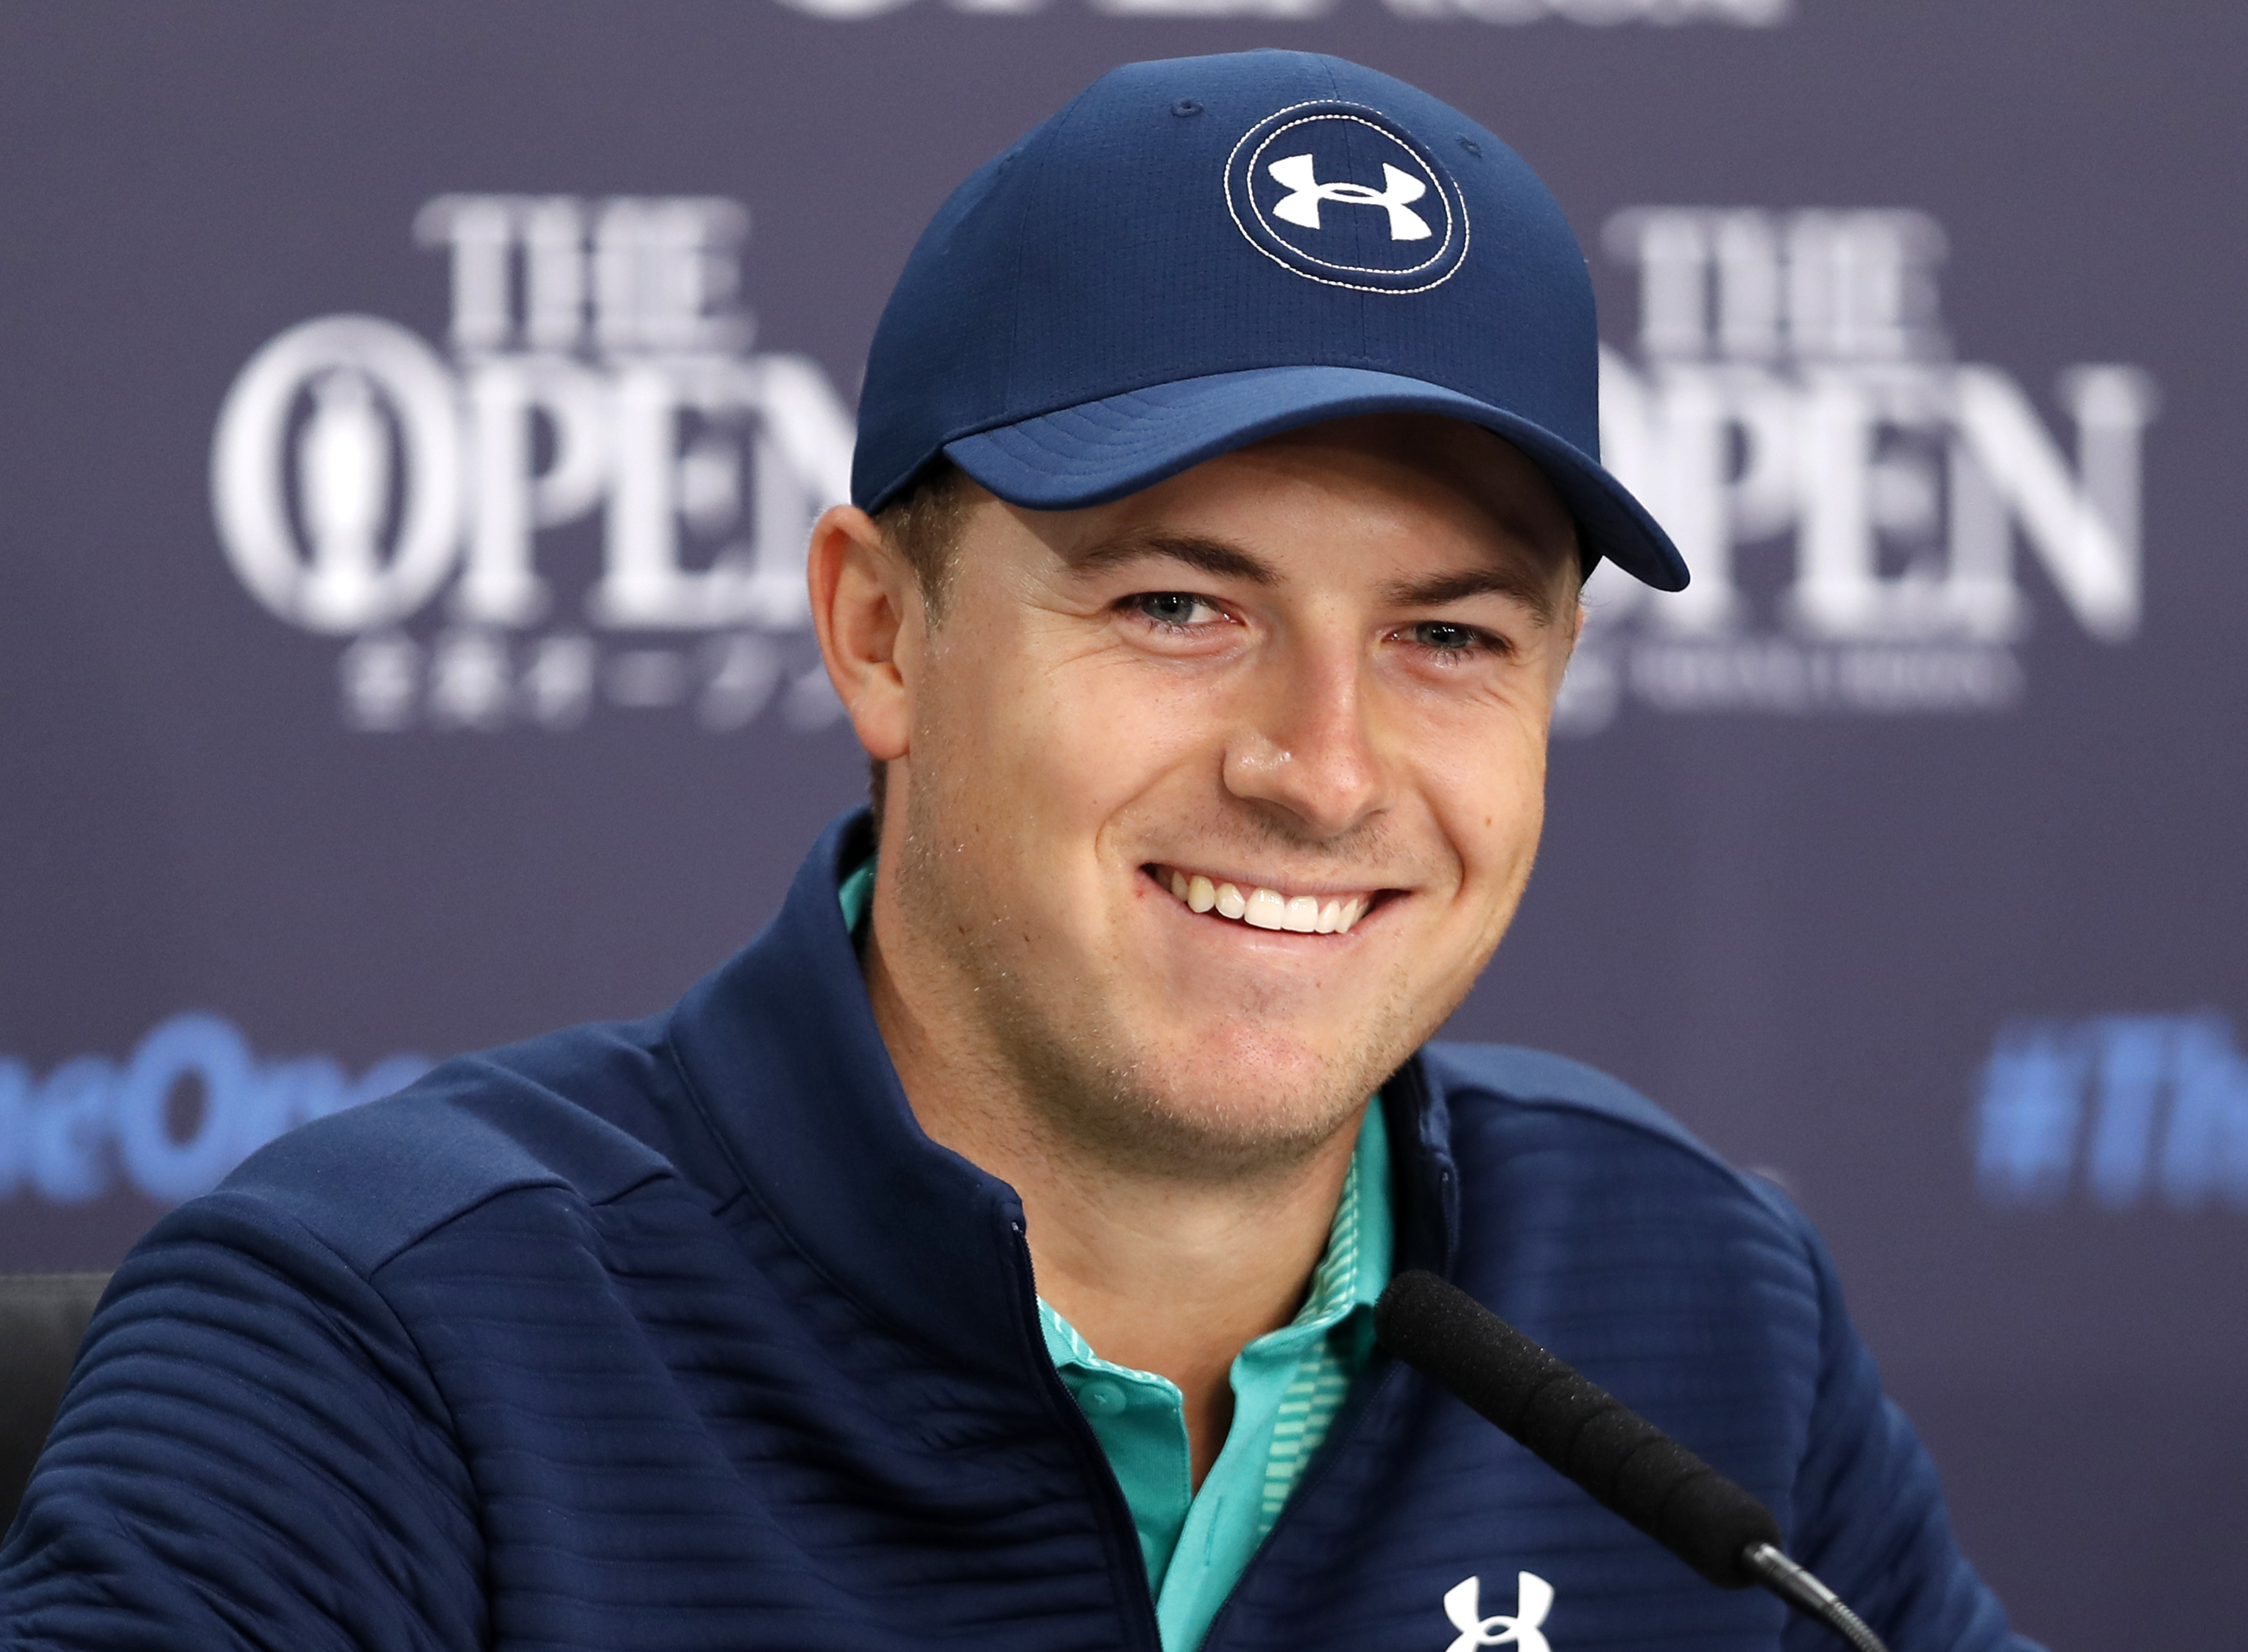 Jordan Spieth of the US speaks during a press conference ahead of the British Open Golf Championship at the Royal Troon Golf Club in Troon, Scotland, Tuesday, July 12, 2016. (AP Photo/Ben Curtis)